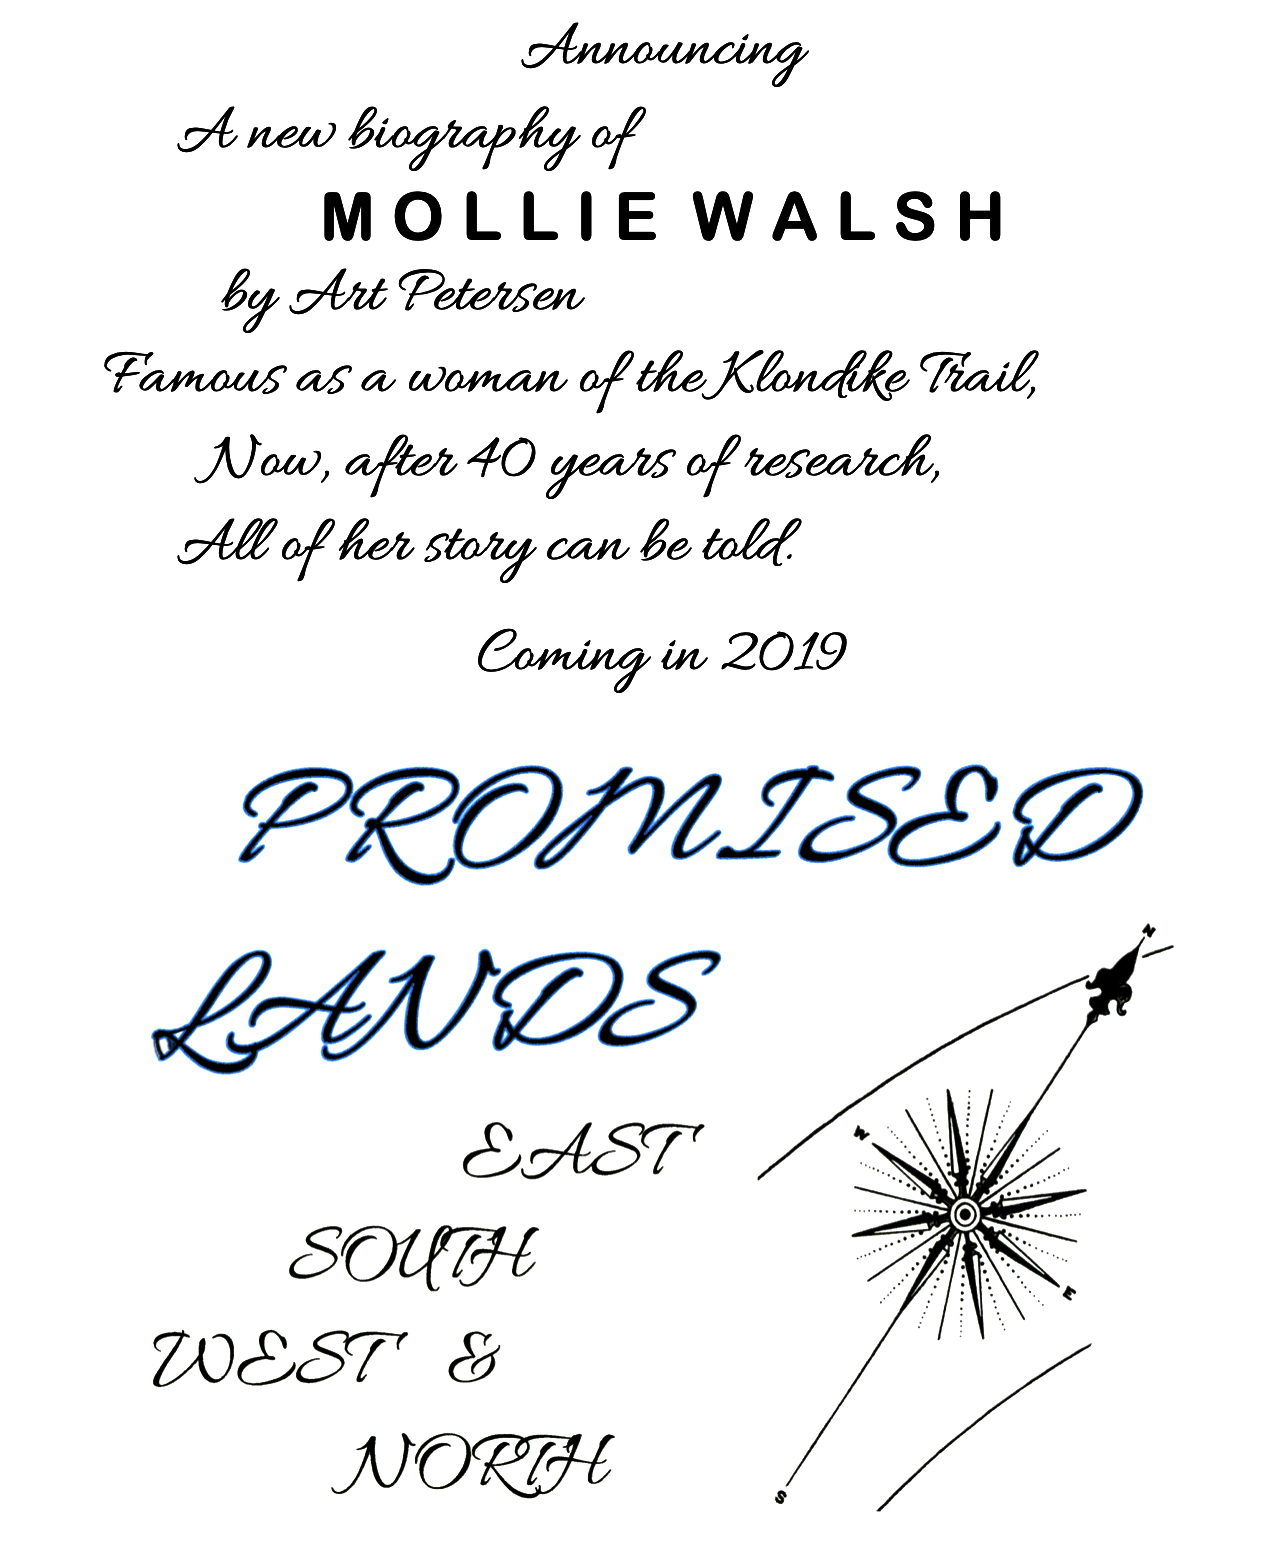 Announcing: A new biography of  Mollie Walsh, by Art Petersen. Famous as a woman of the Klondike Trail, now, after 40 years of research, her story can be told.  PROMISED LANDS - Coming 2019